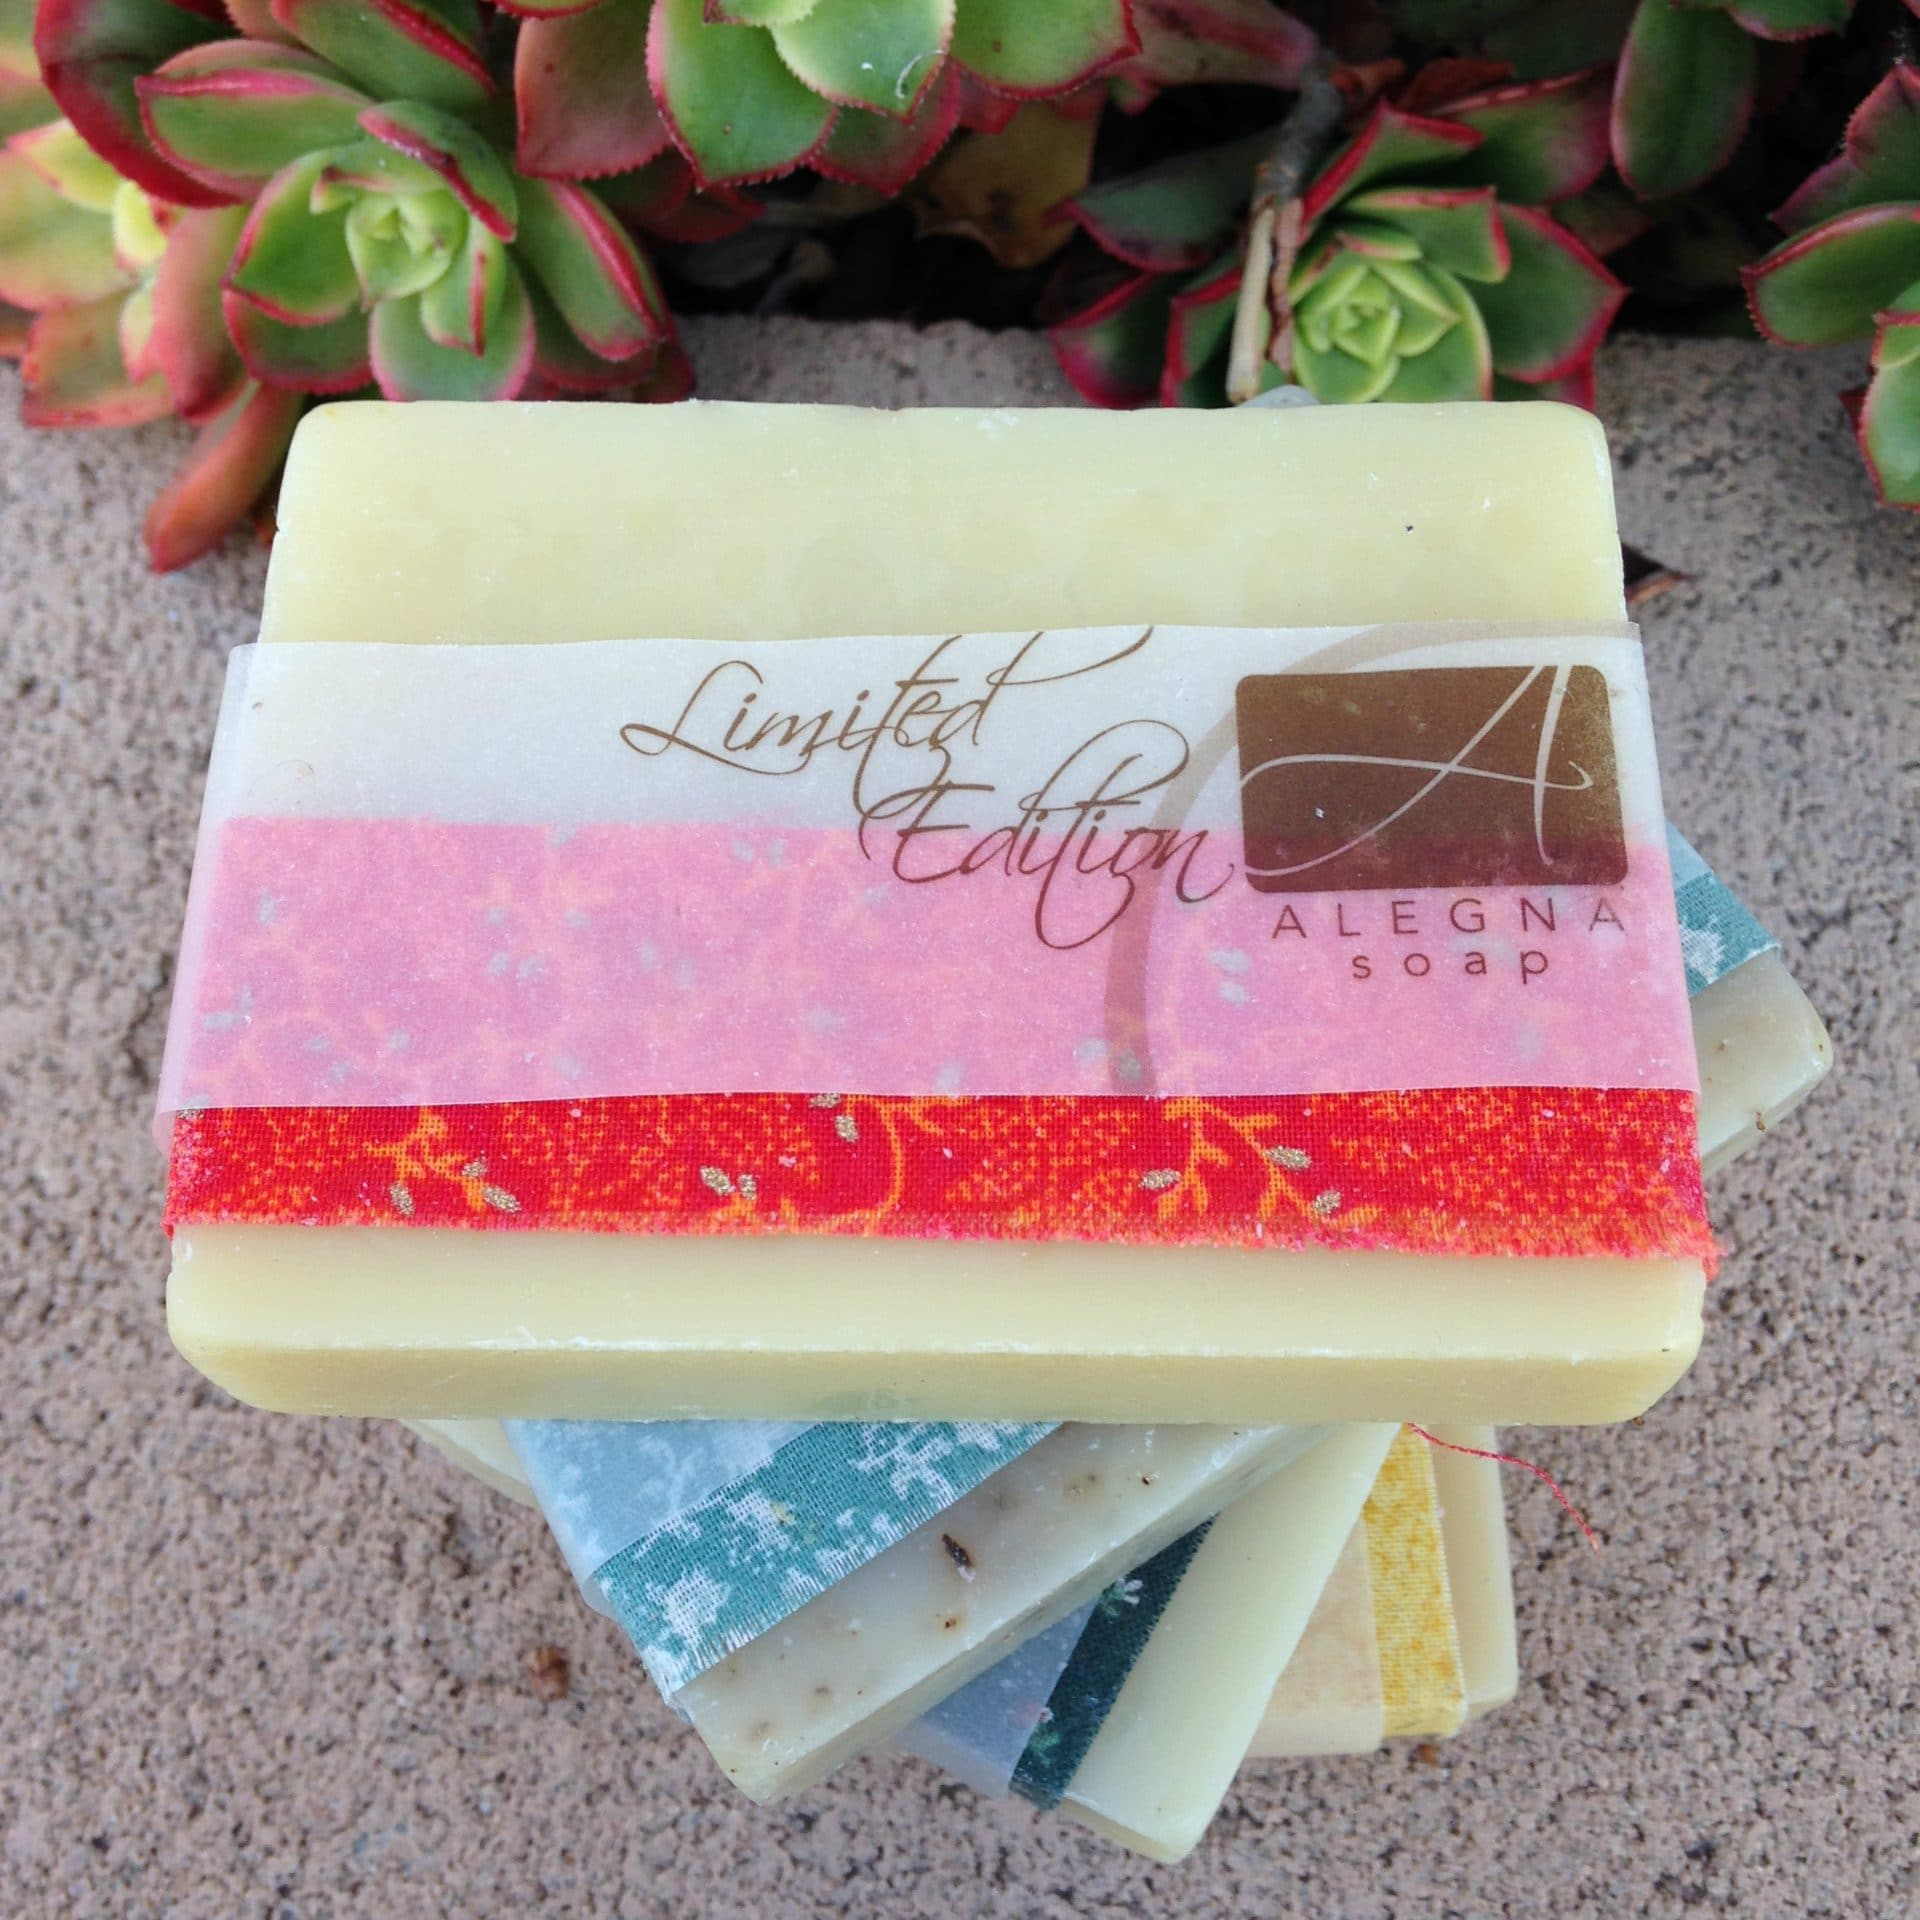 Photo Friday – New Limited Edition soaps